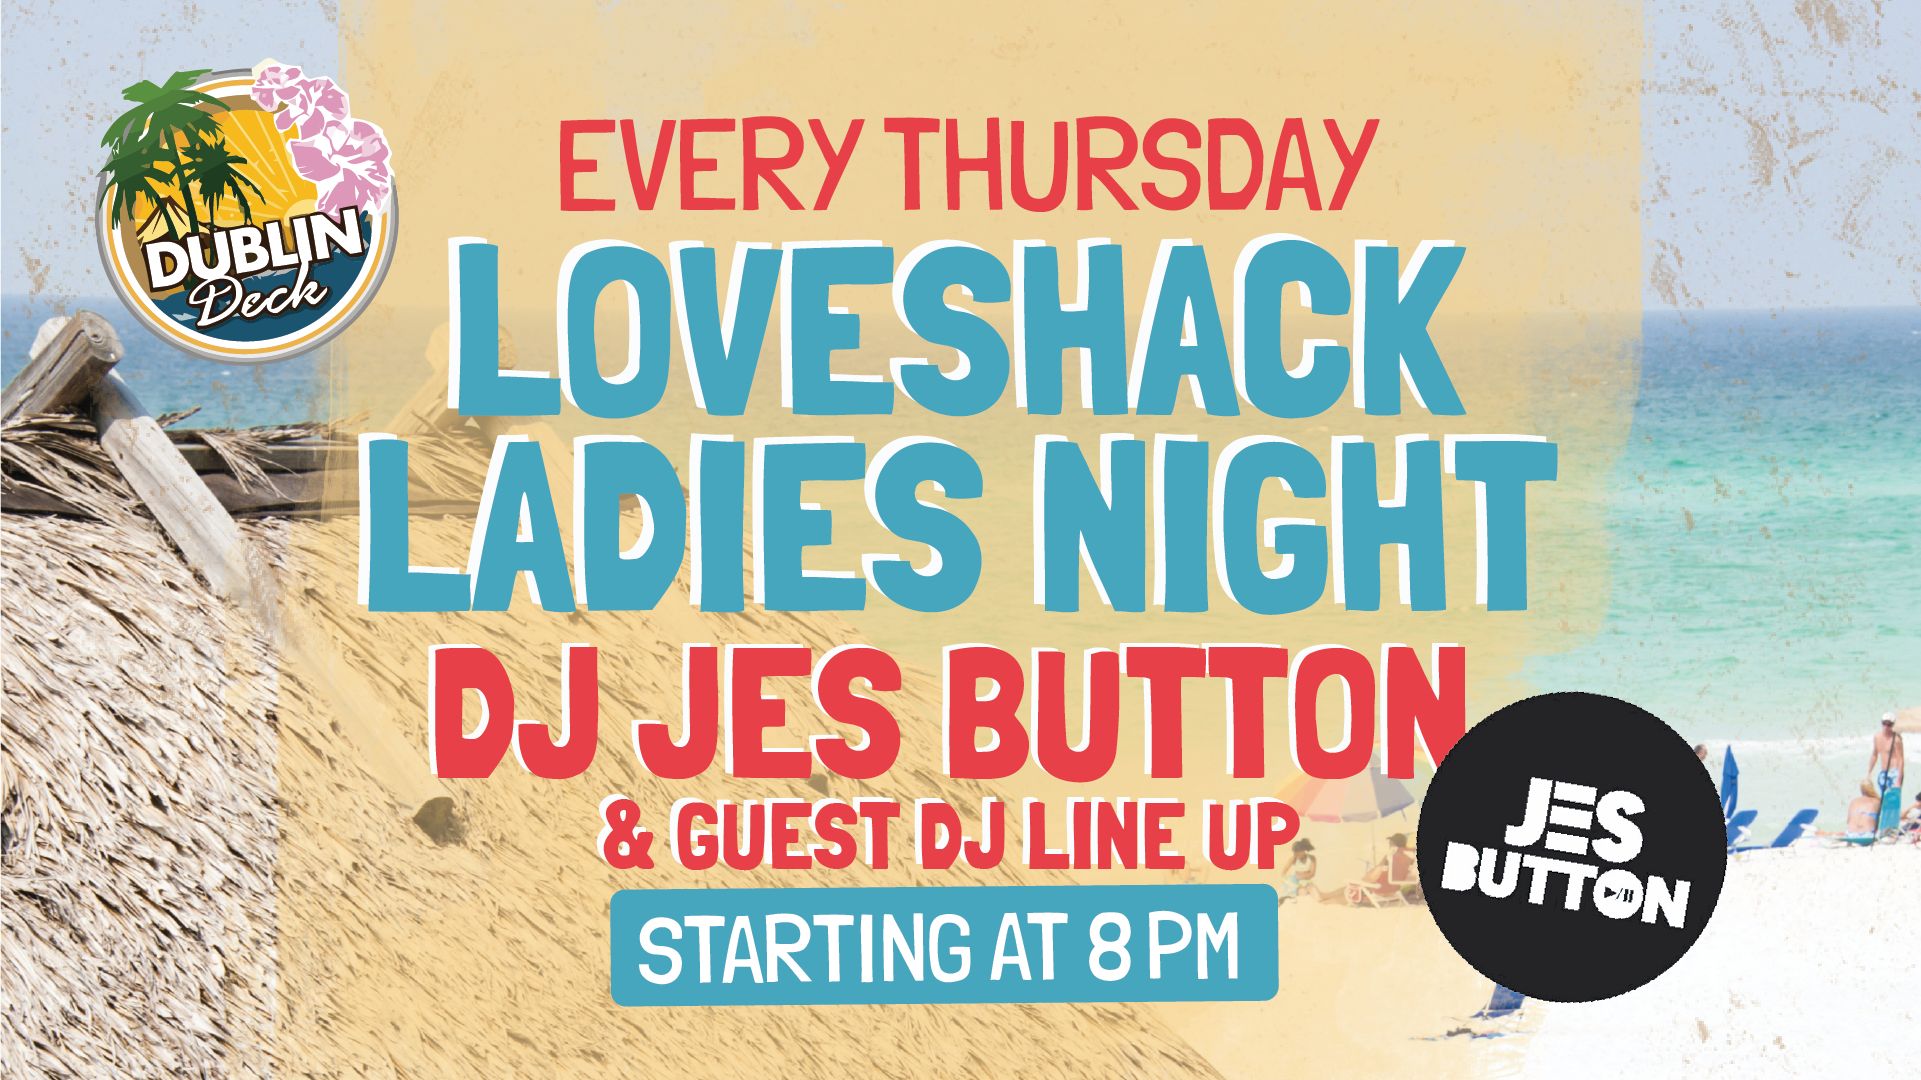 Music by DJ Jes Button every Thursday at 8:00 PM